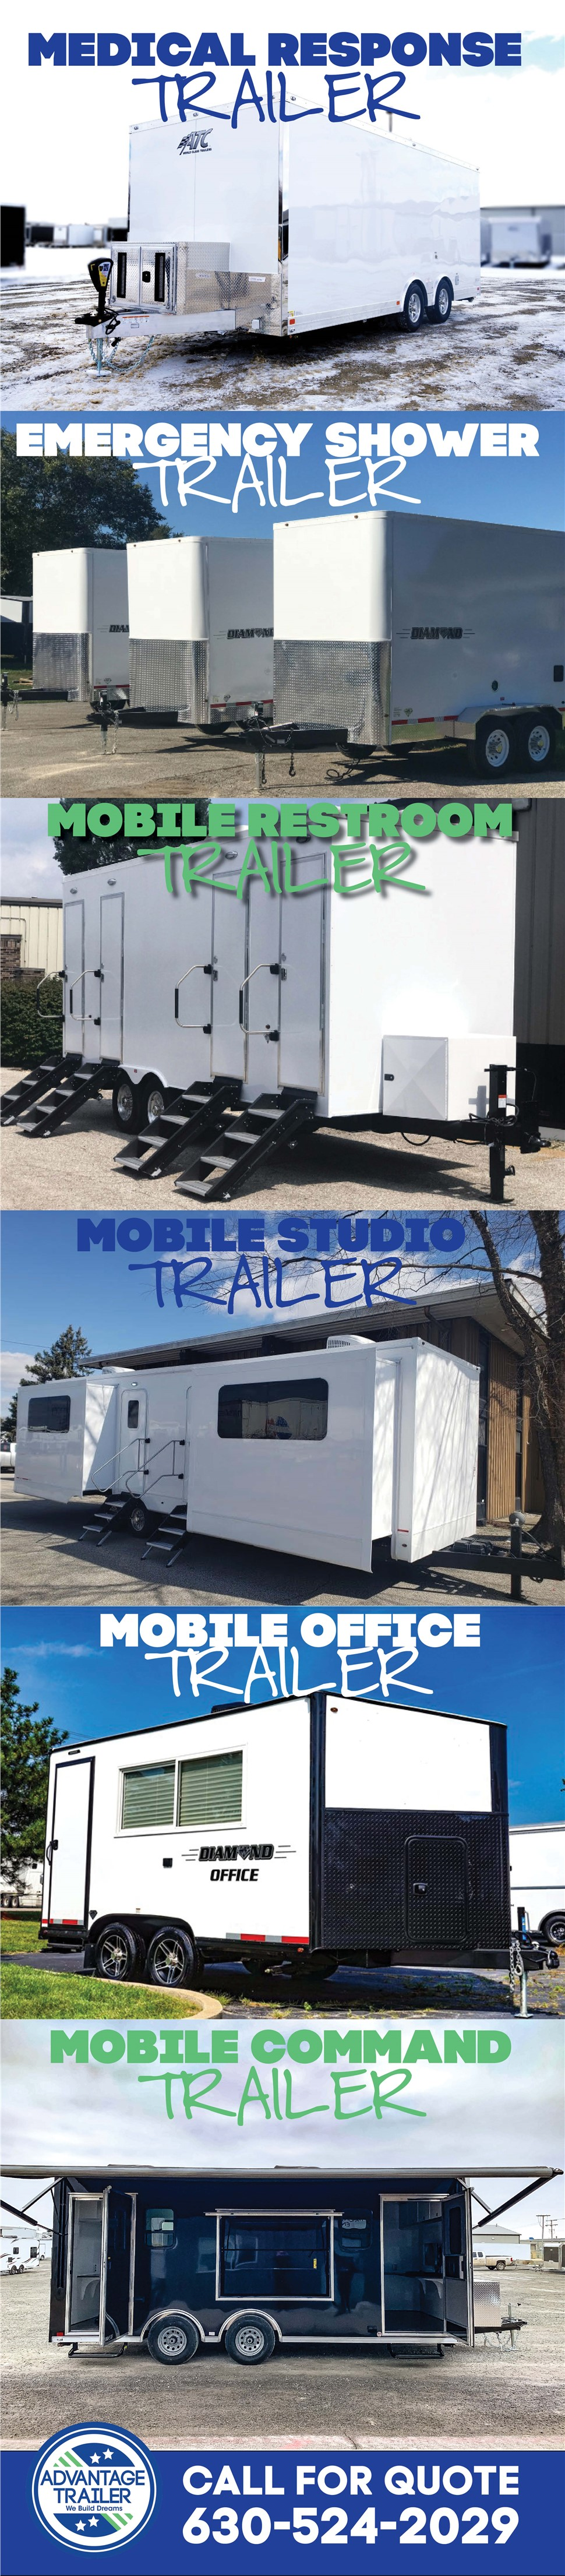 Medical & Emergency Response Trailers